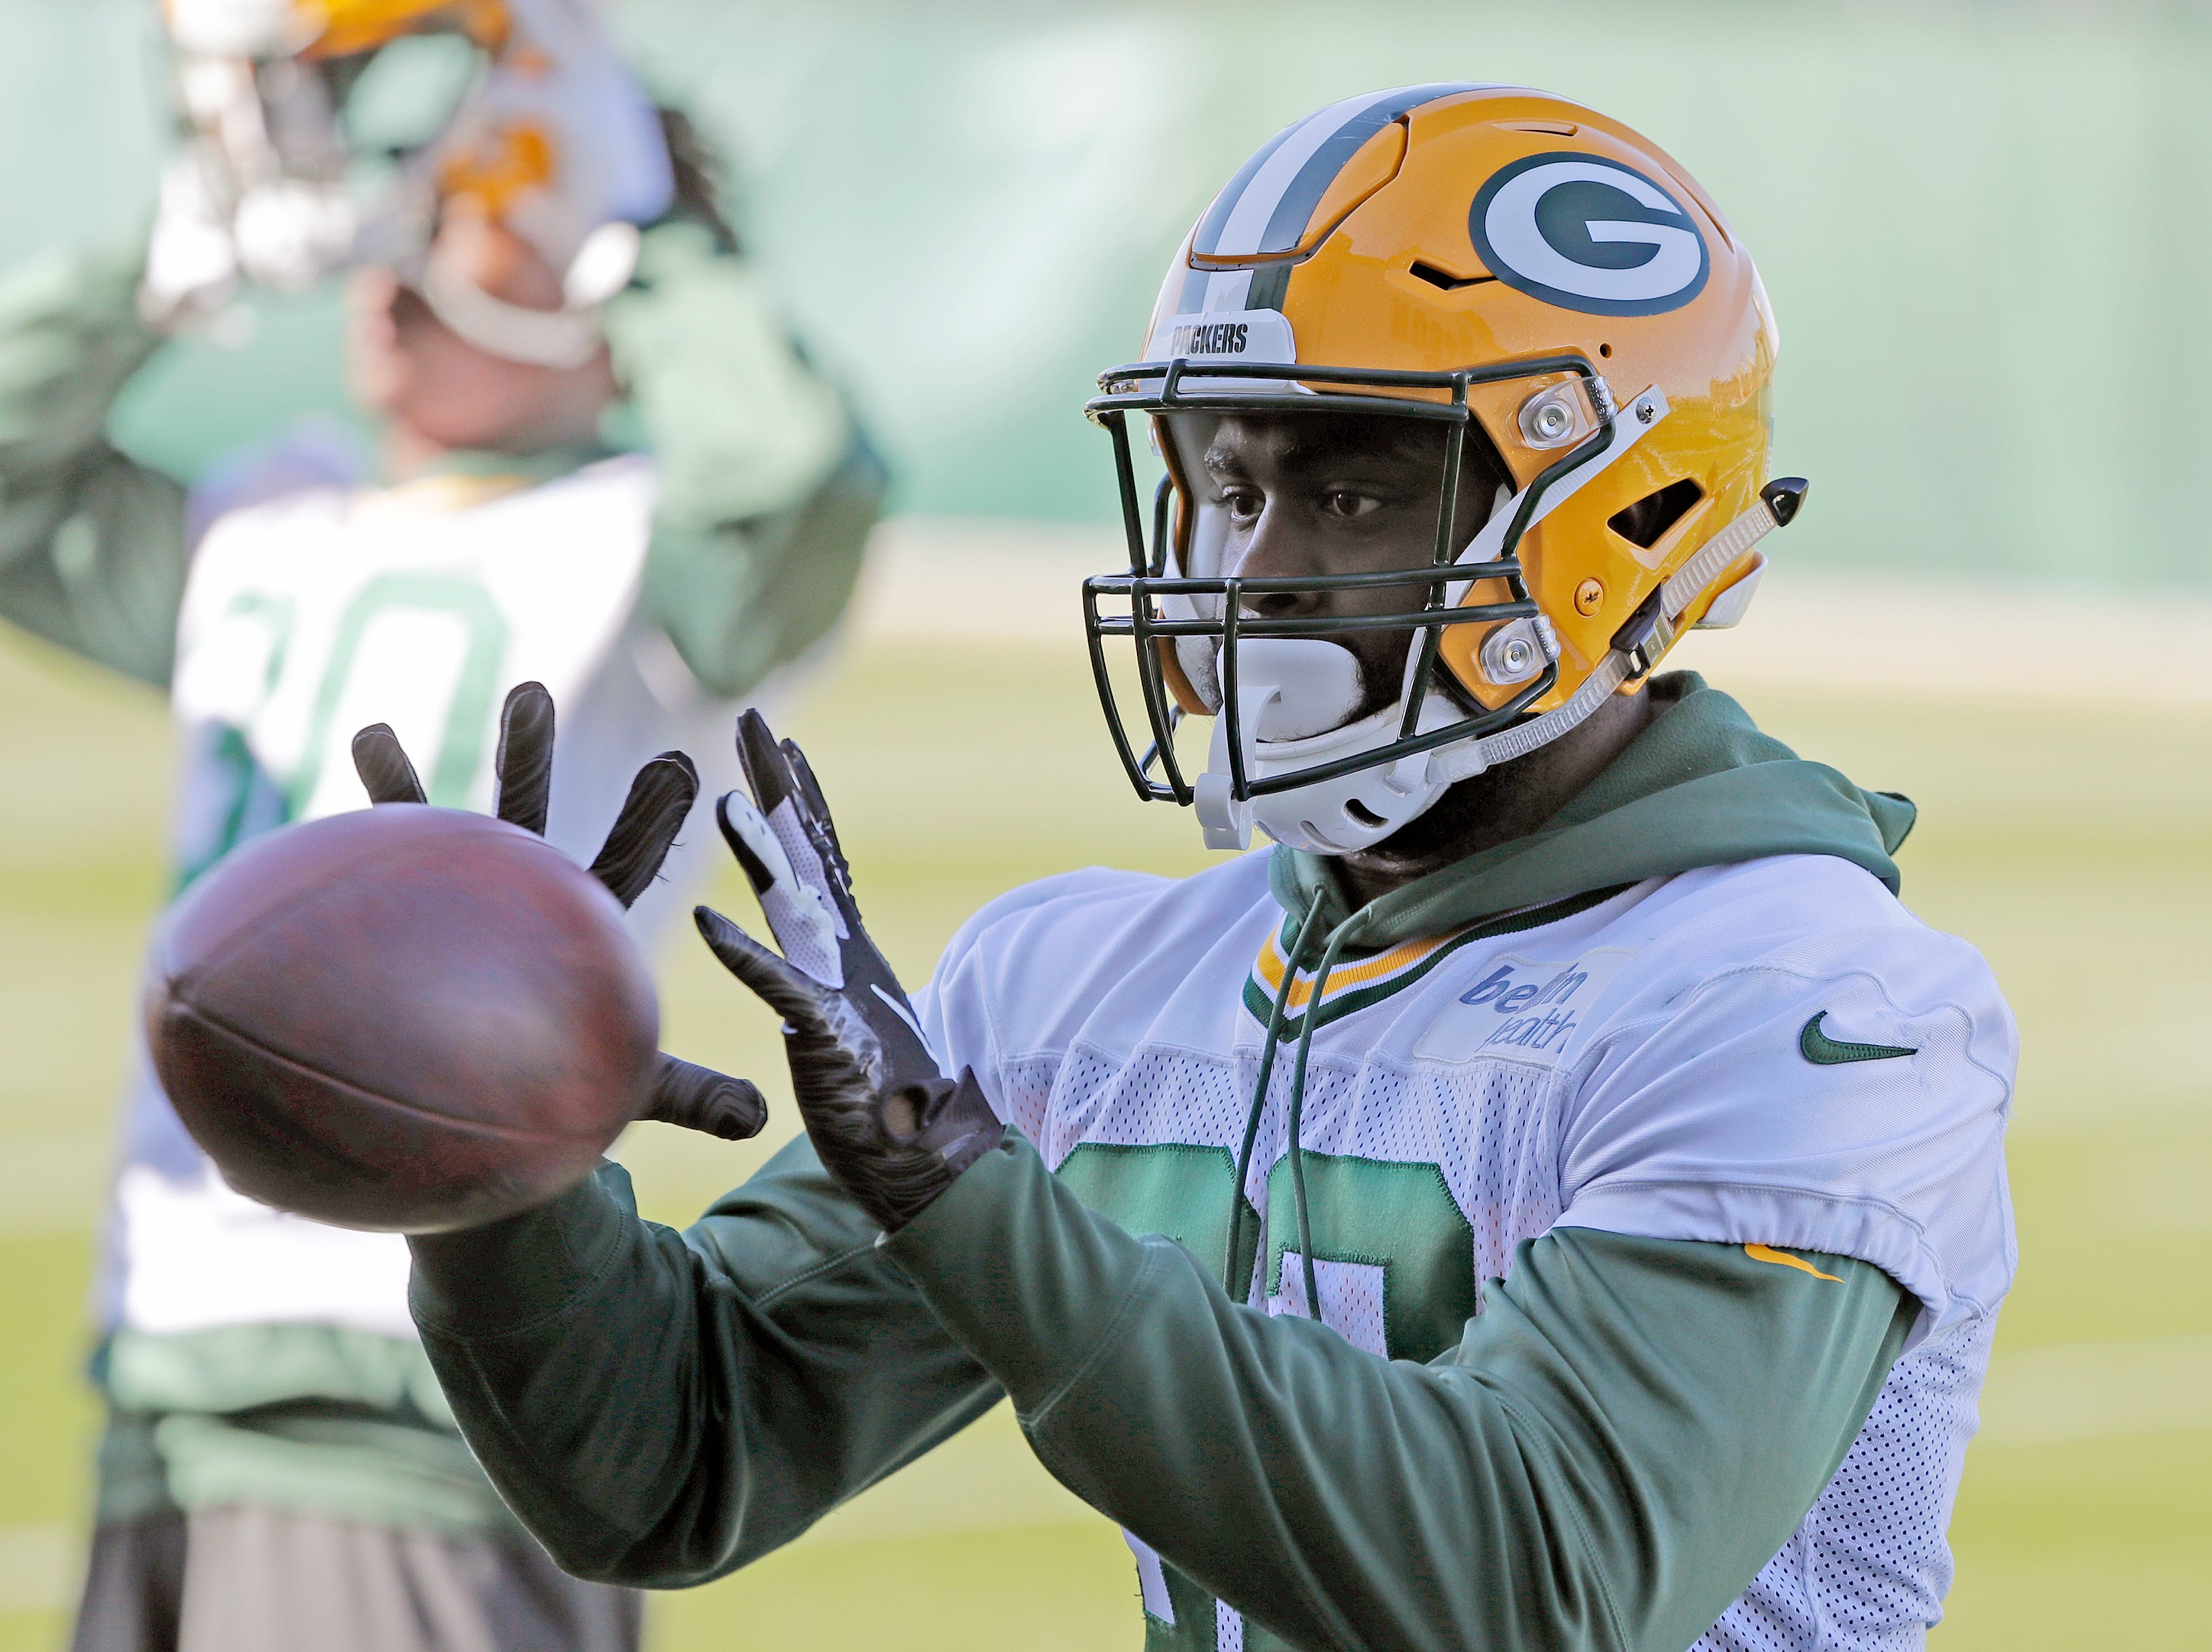 Green Bay Packers running back Tra Carson (32) catches during practice at Ray Nitschke Field on Wednesday, October 31, 2018 in Ashwaubenon, Wis.